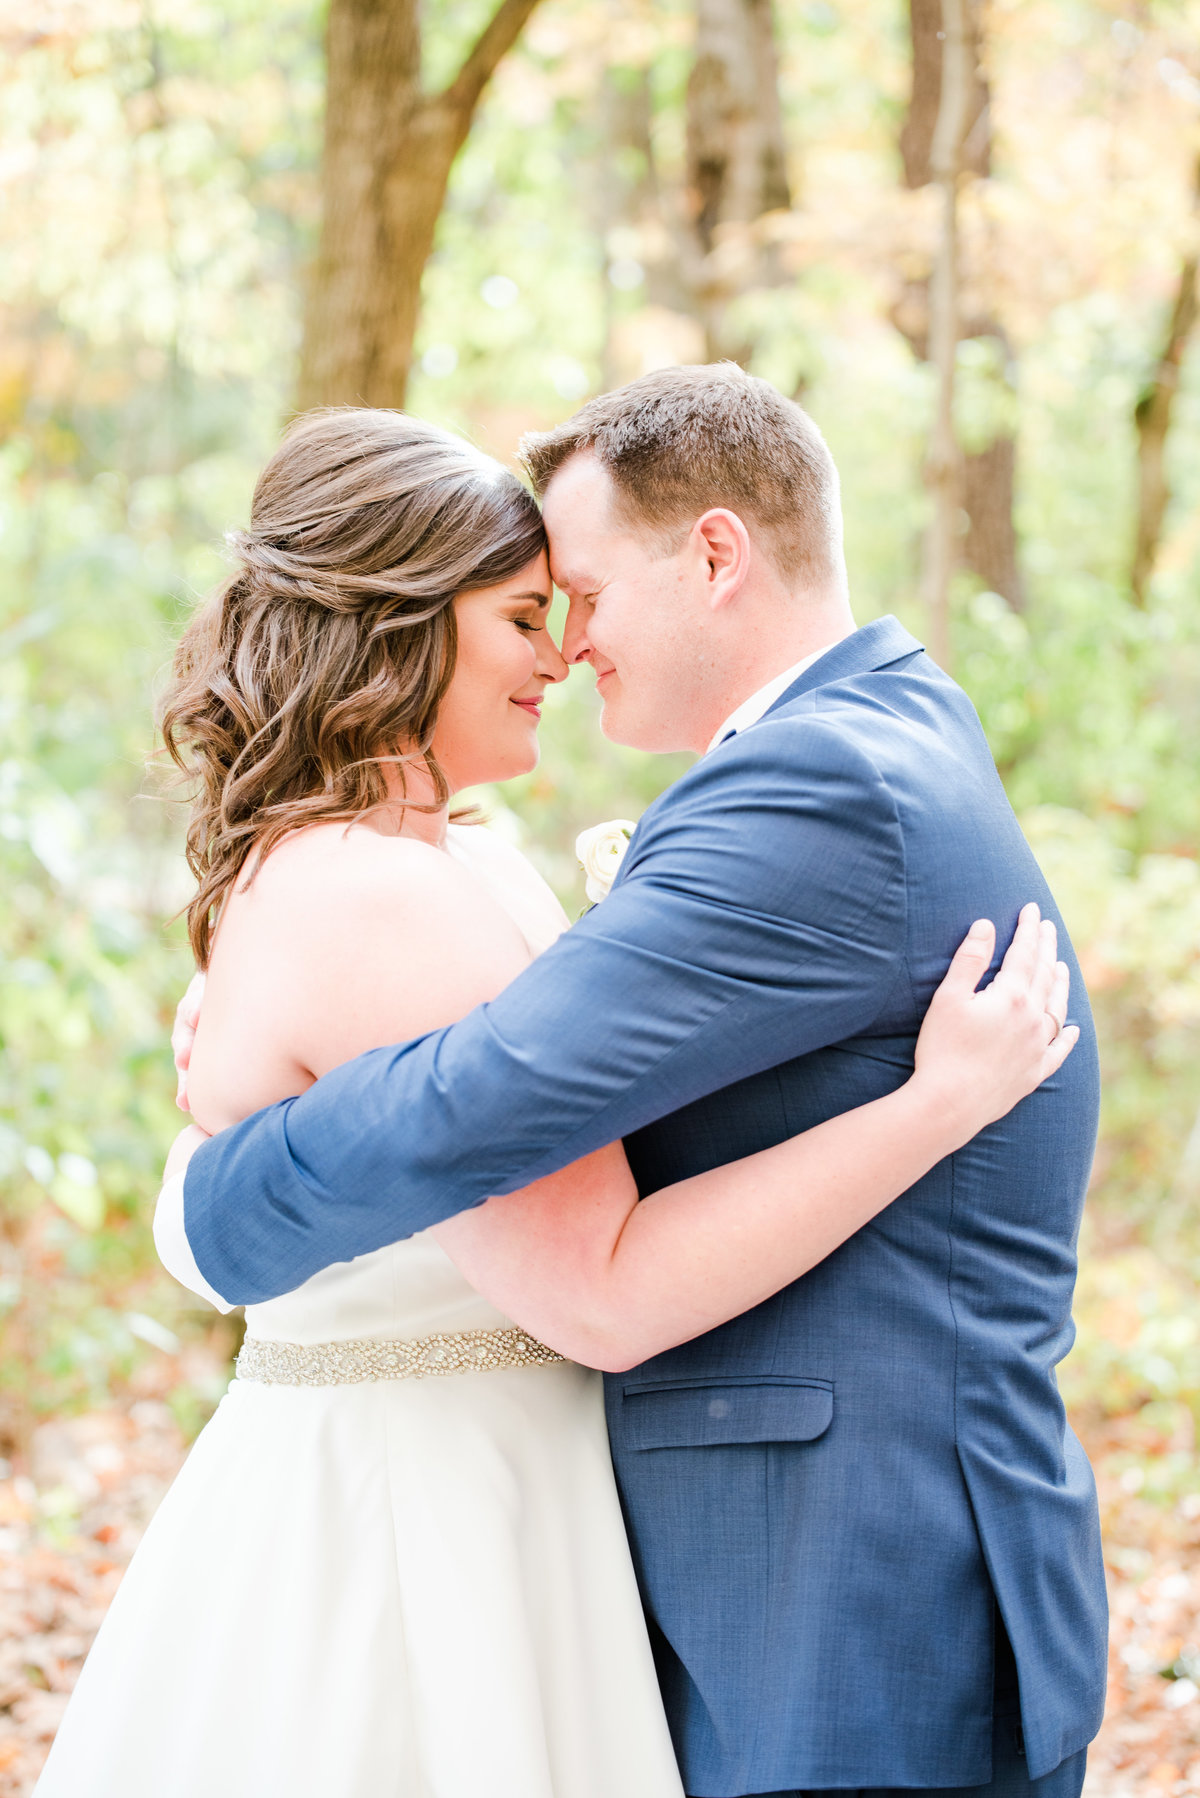 Newlywed Portraits Cait Potter Creative LLC Milltop Potters Bridge Noblesville Square Courthouse Wedding-4